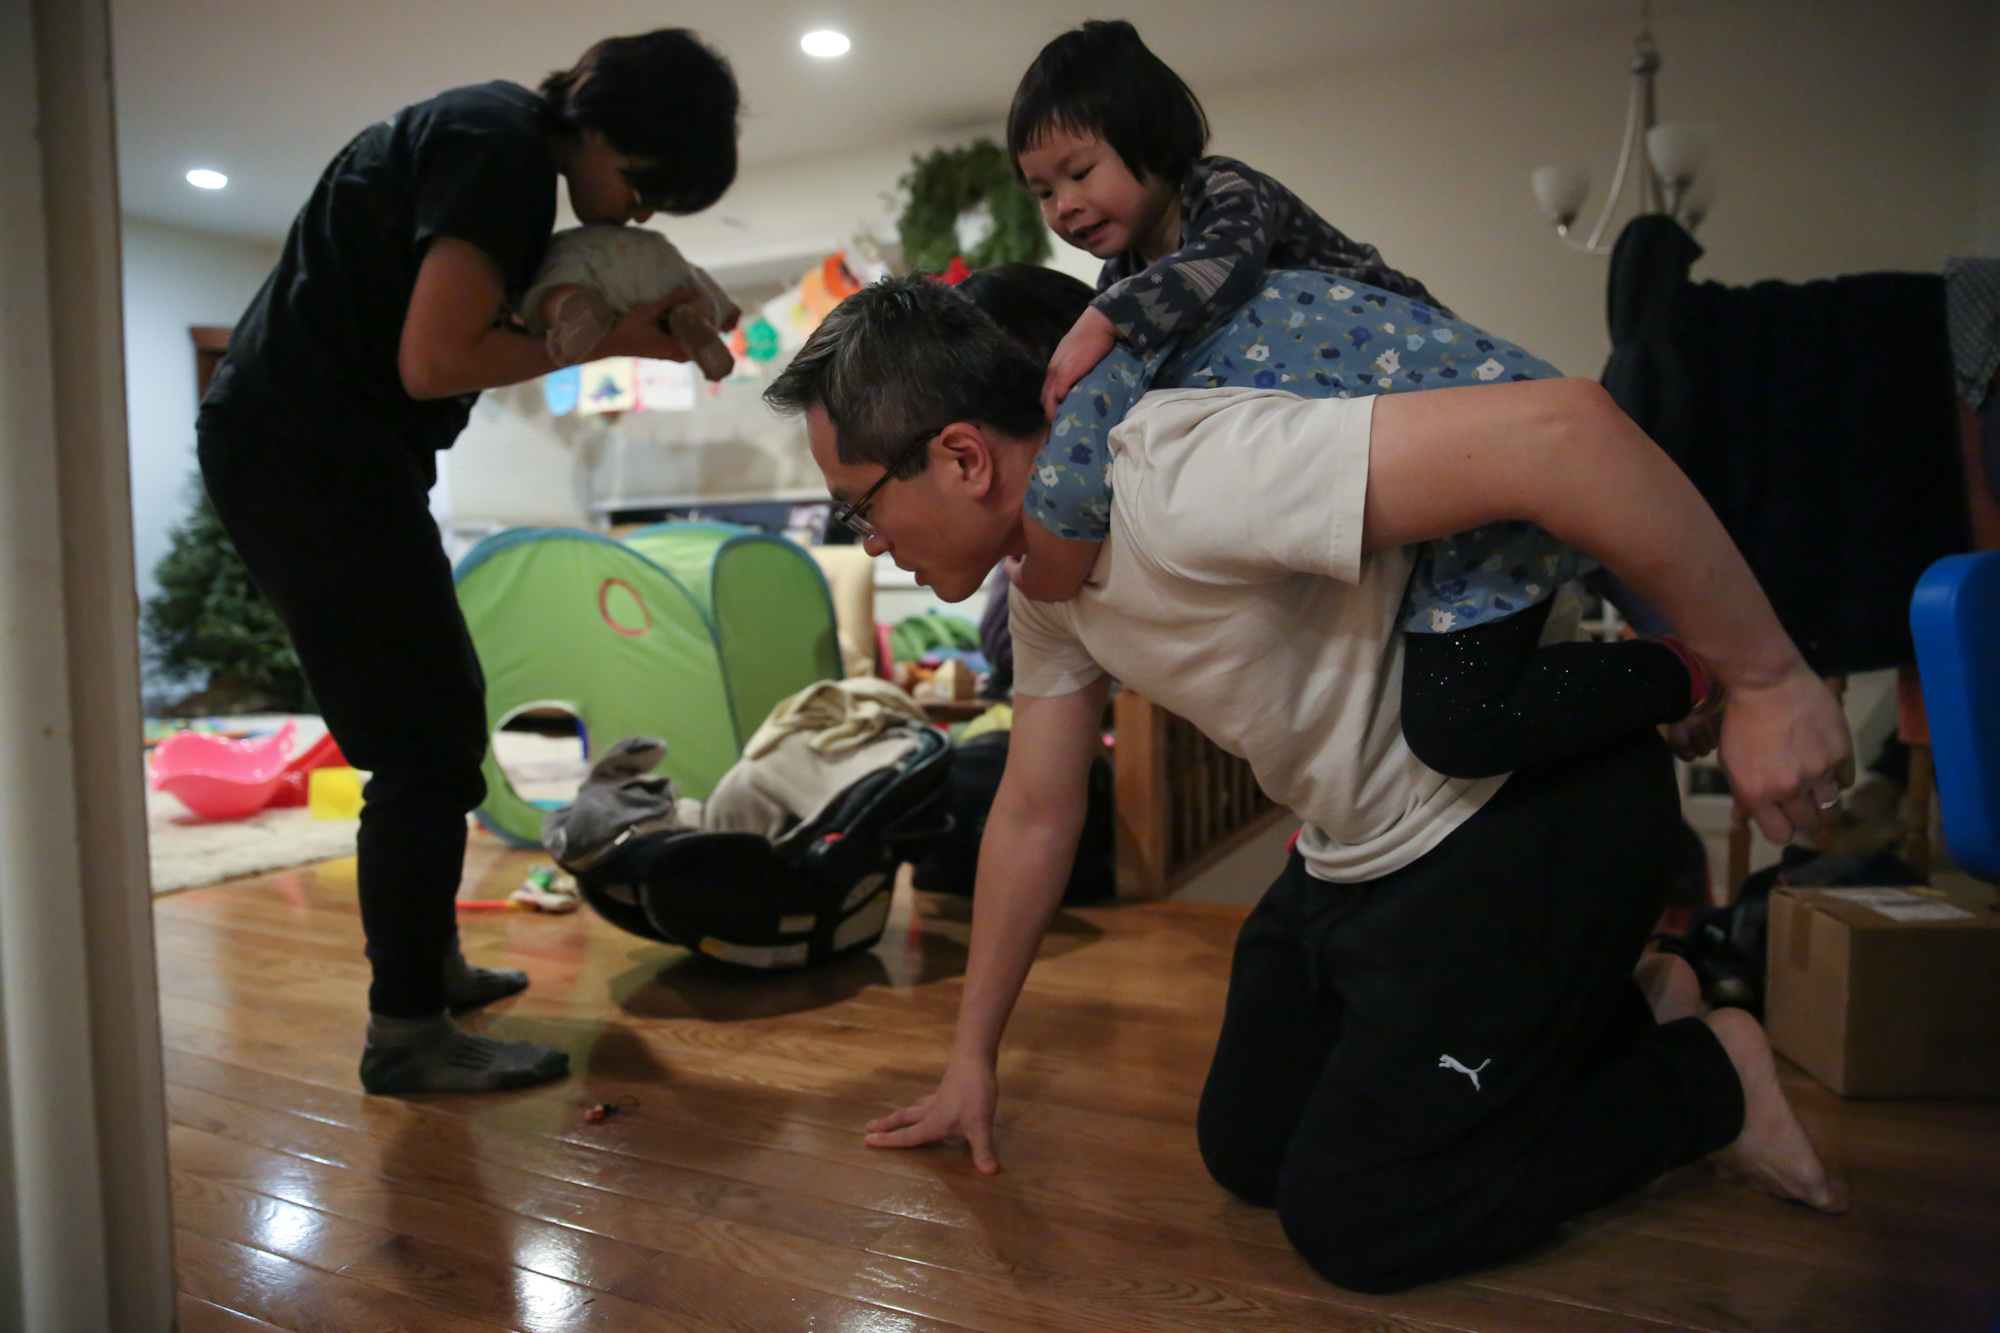 Two girls climb on man's back while crouched on the floor. Woman holding baby leans over to smell baby's behind.